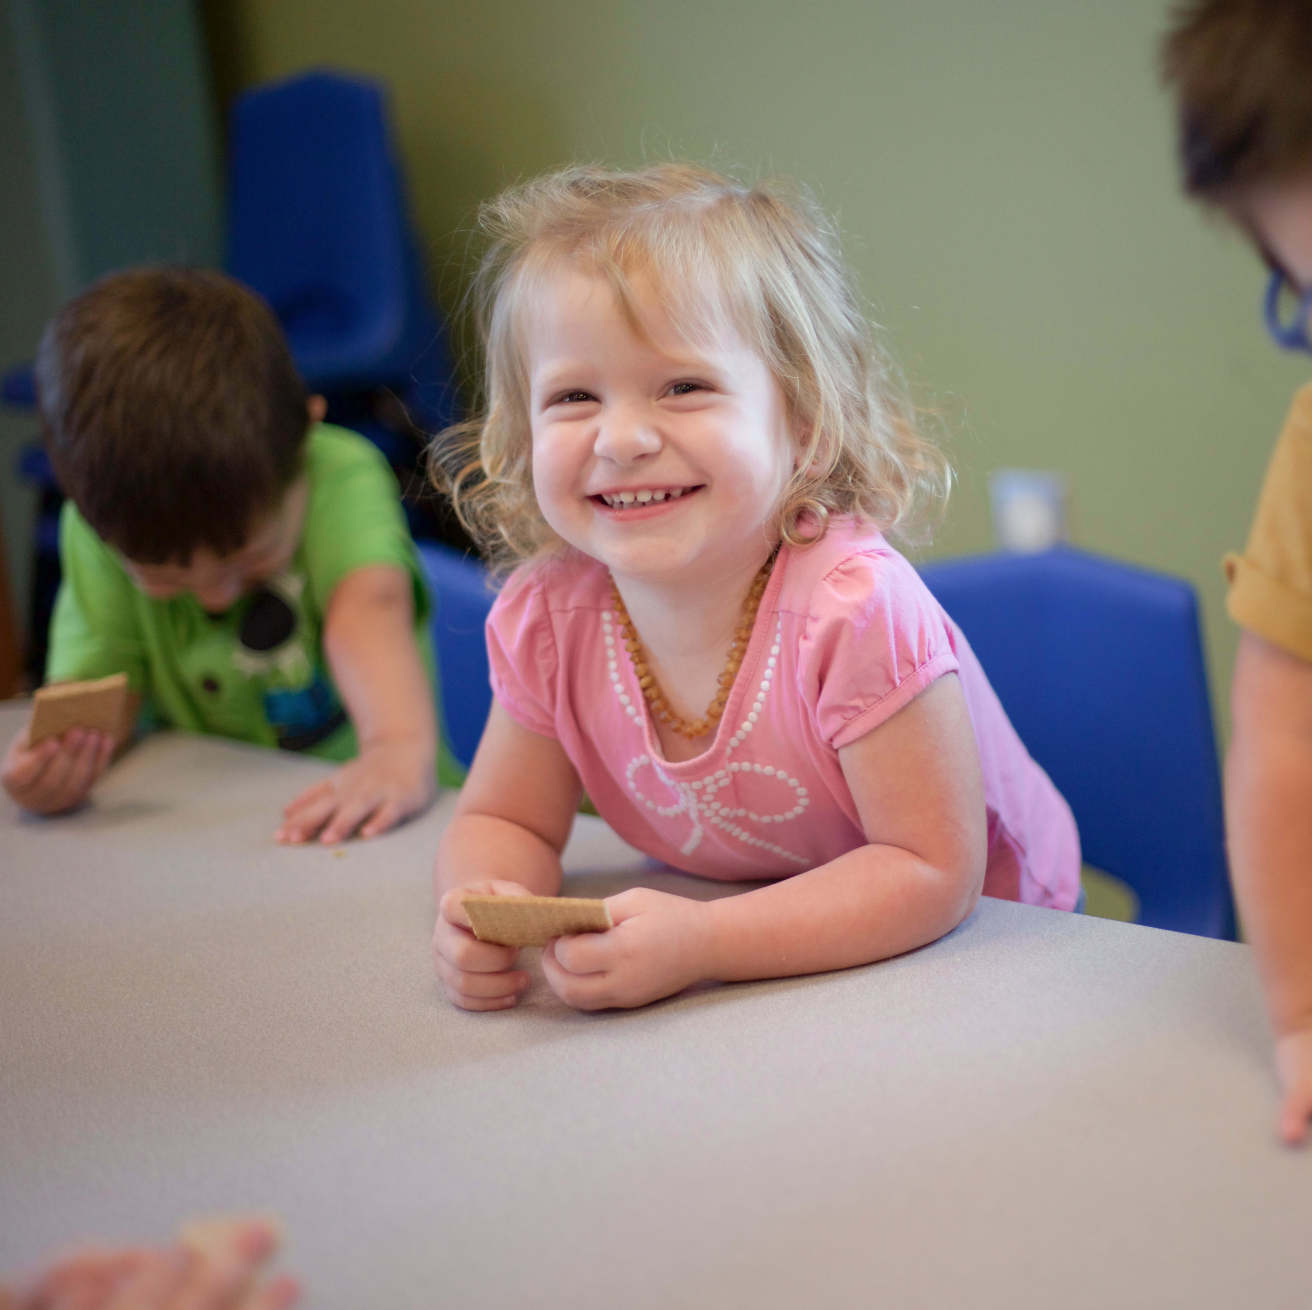 Ones & Twos - Our toddlers are offered a variety of opportunities to explore the world God made through play. Gross motor skills and social skills are developed through both structured and unstructured playtime. Their days are filled with music, art, story time, outside time and more.